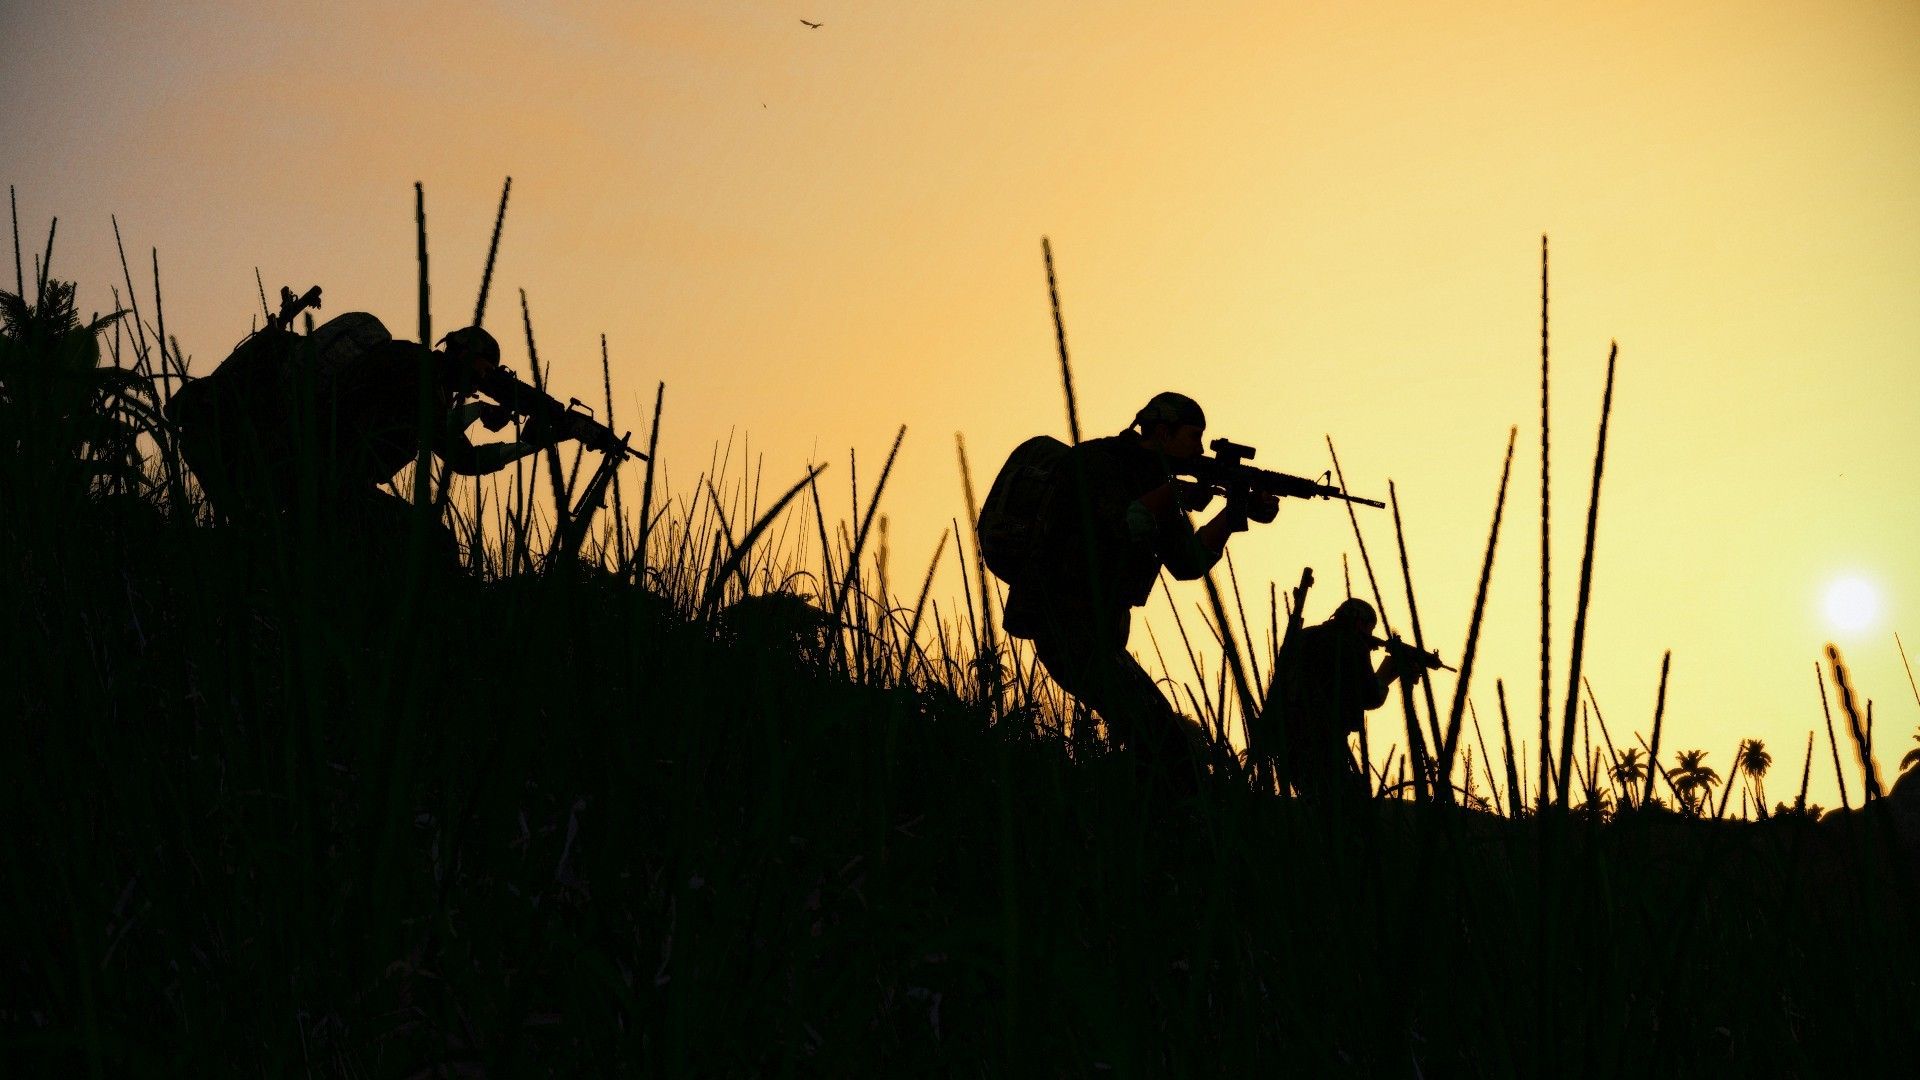 Military Background ·① Download Free Awesome High